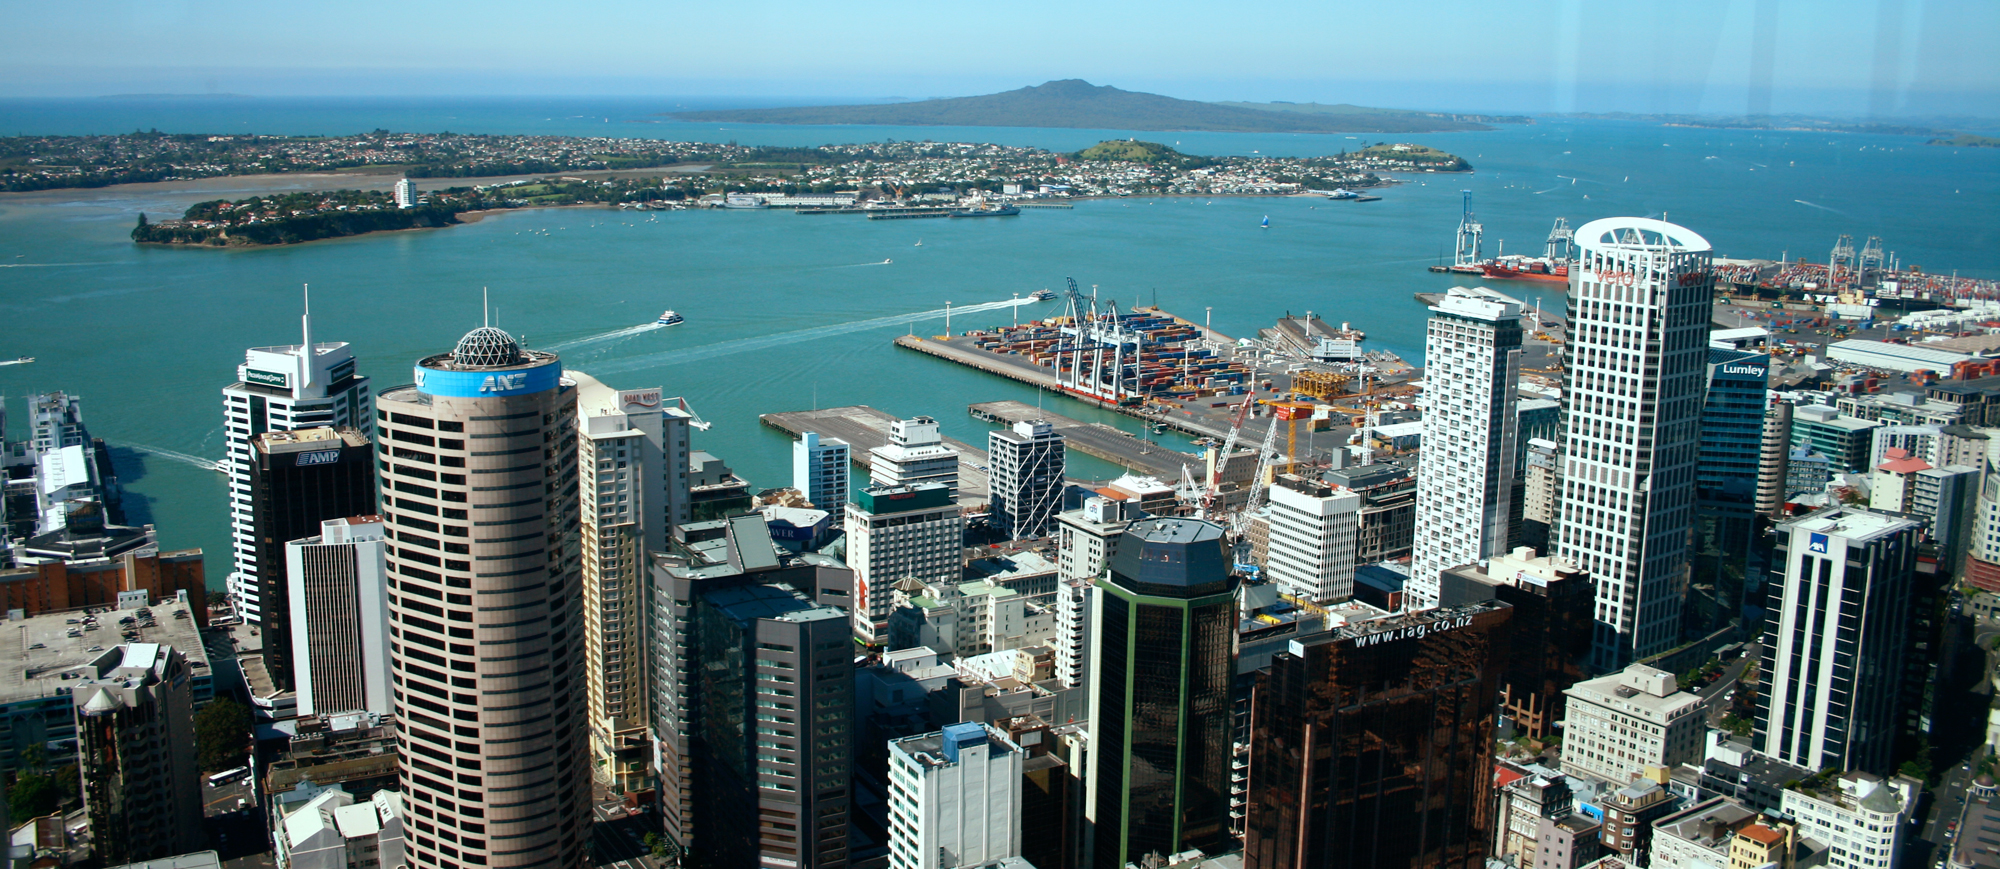 waitemata harbour from sky tower